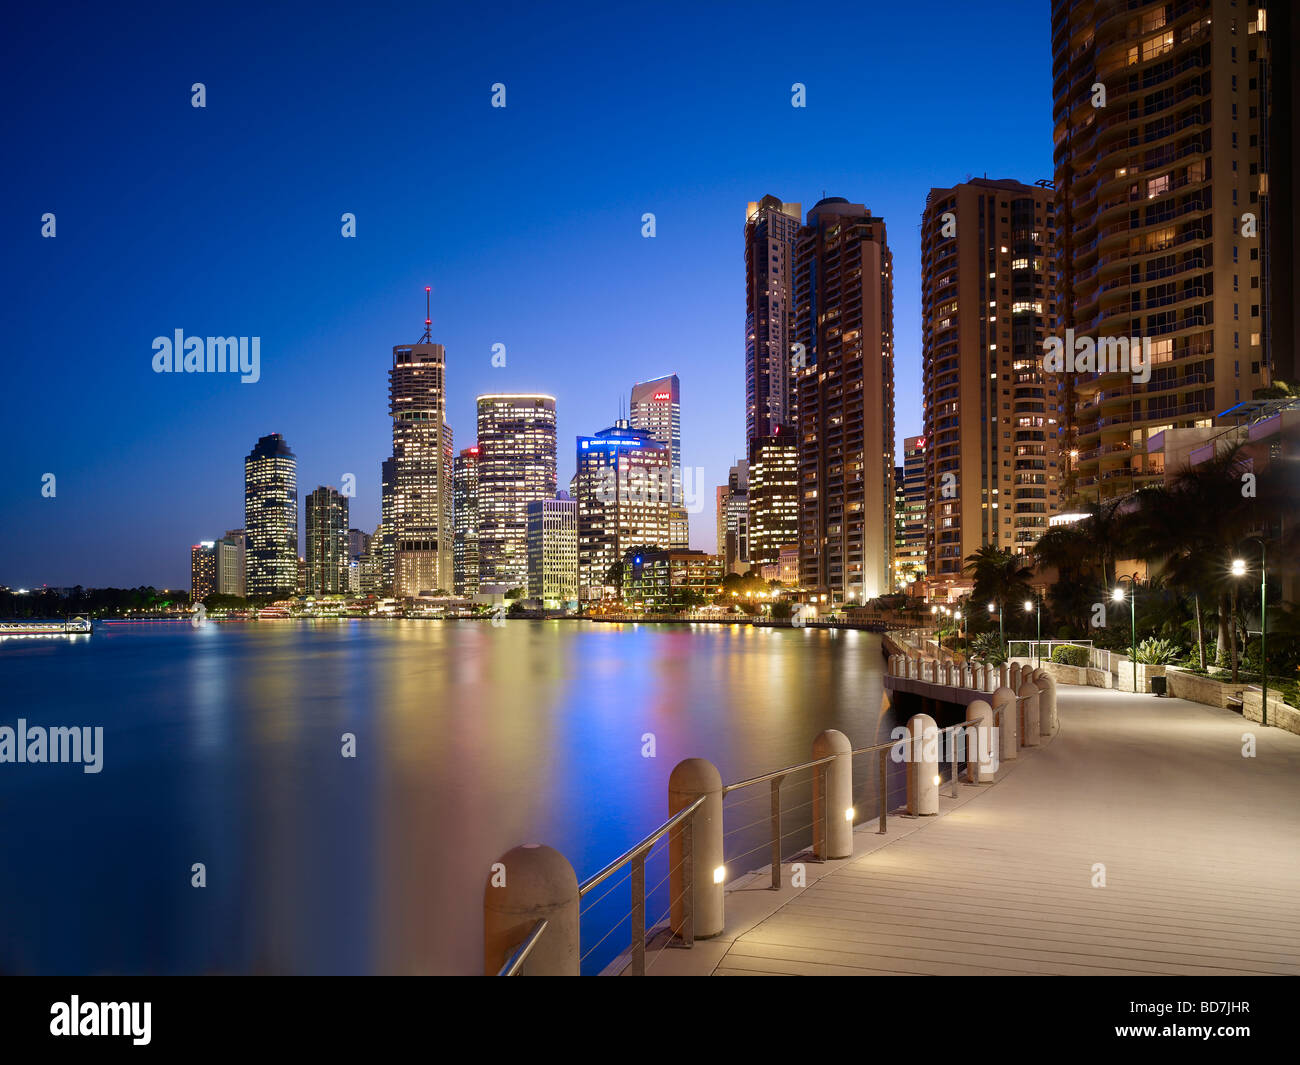 Brisbane Australia Central Business District at night - Stock Image